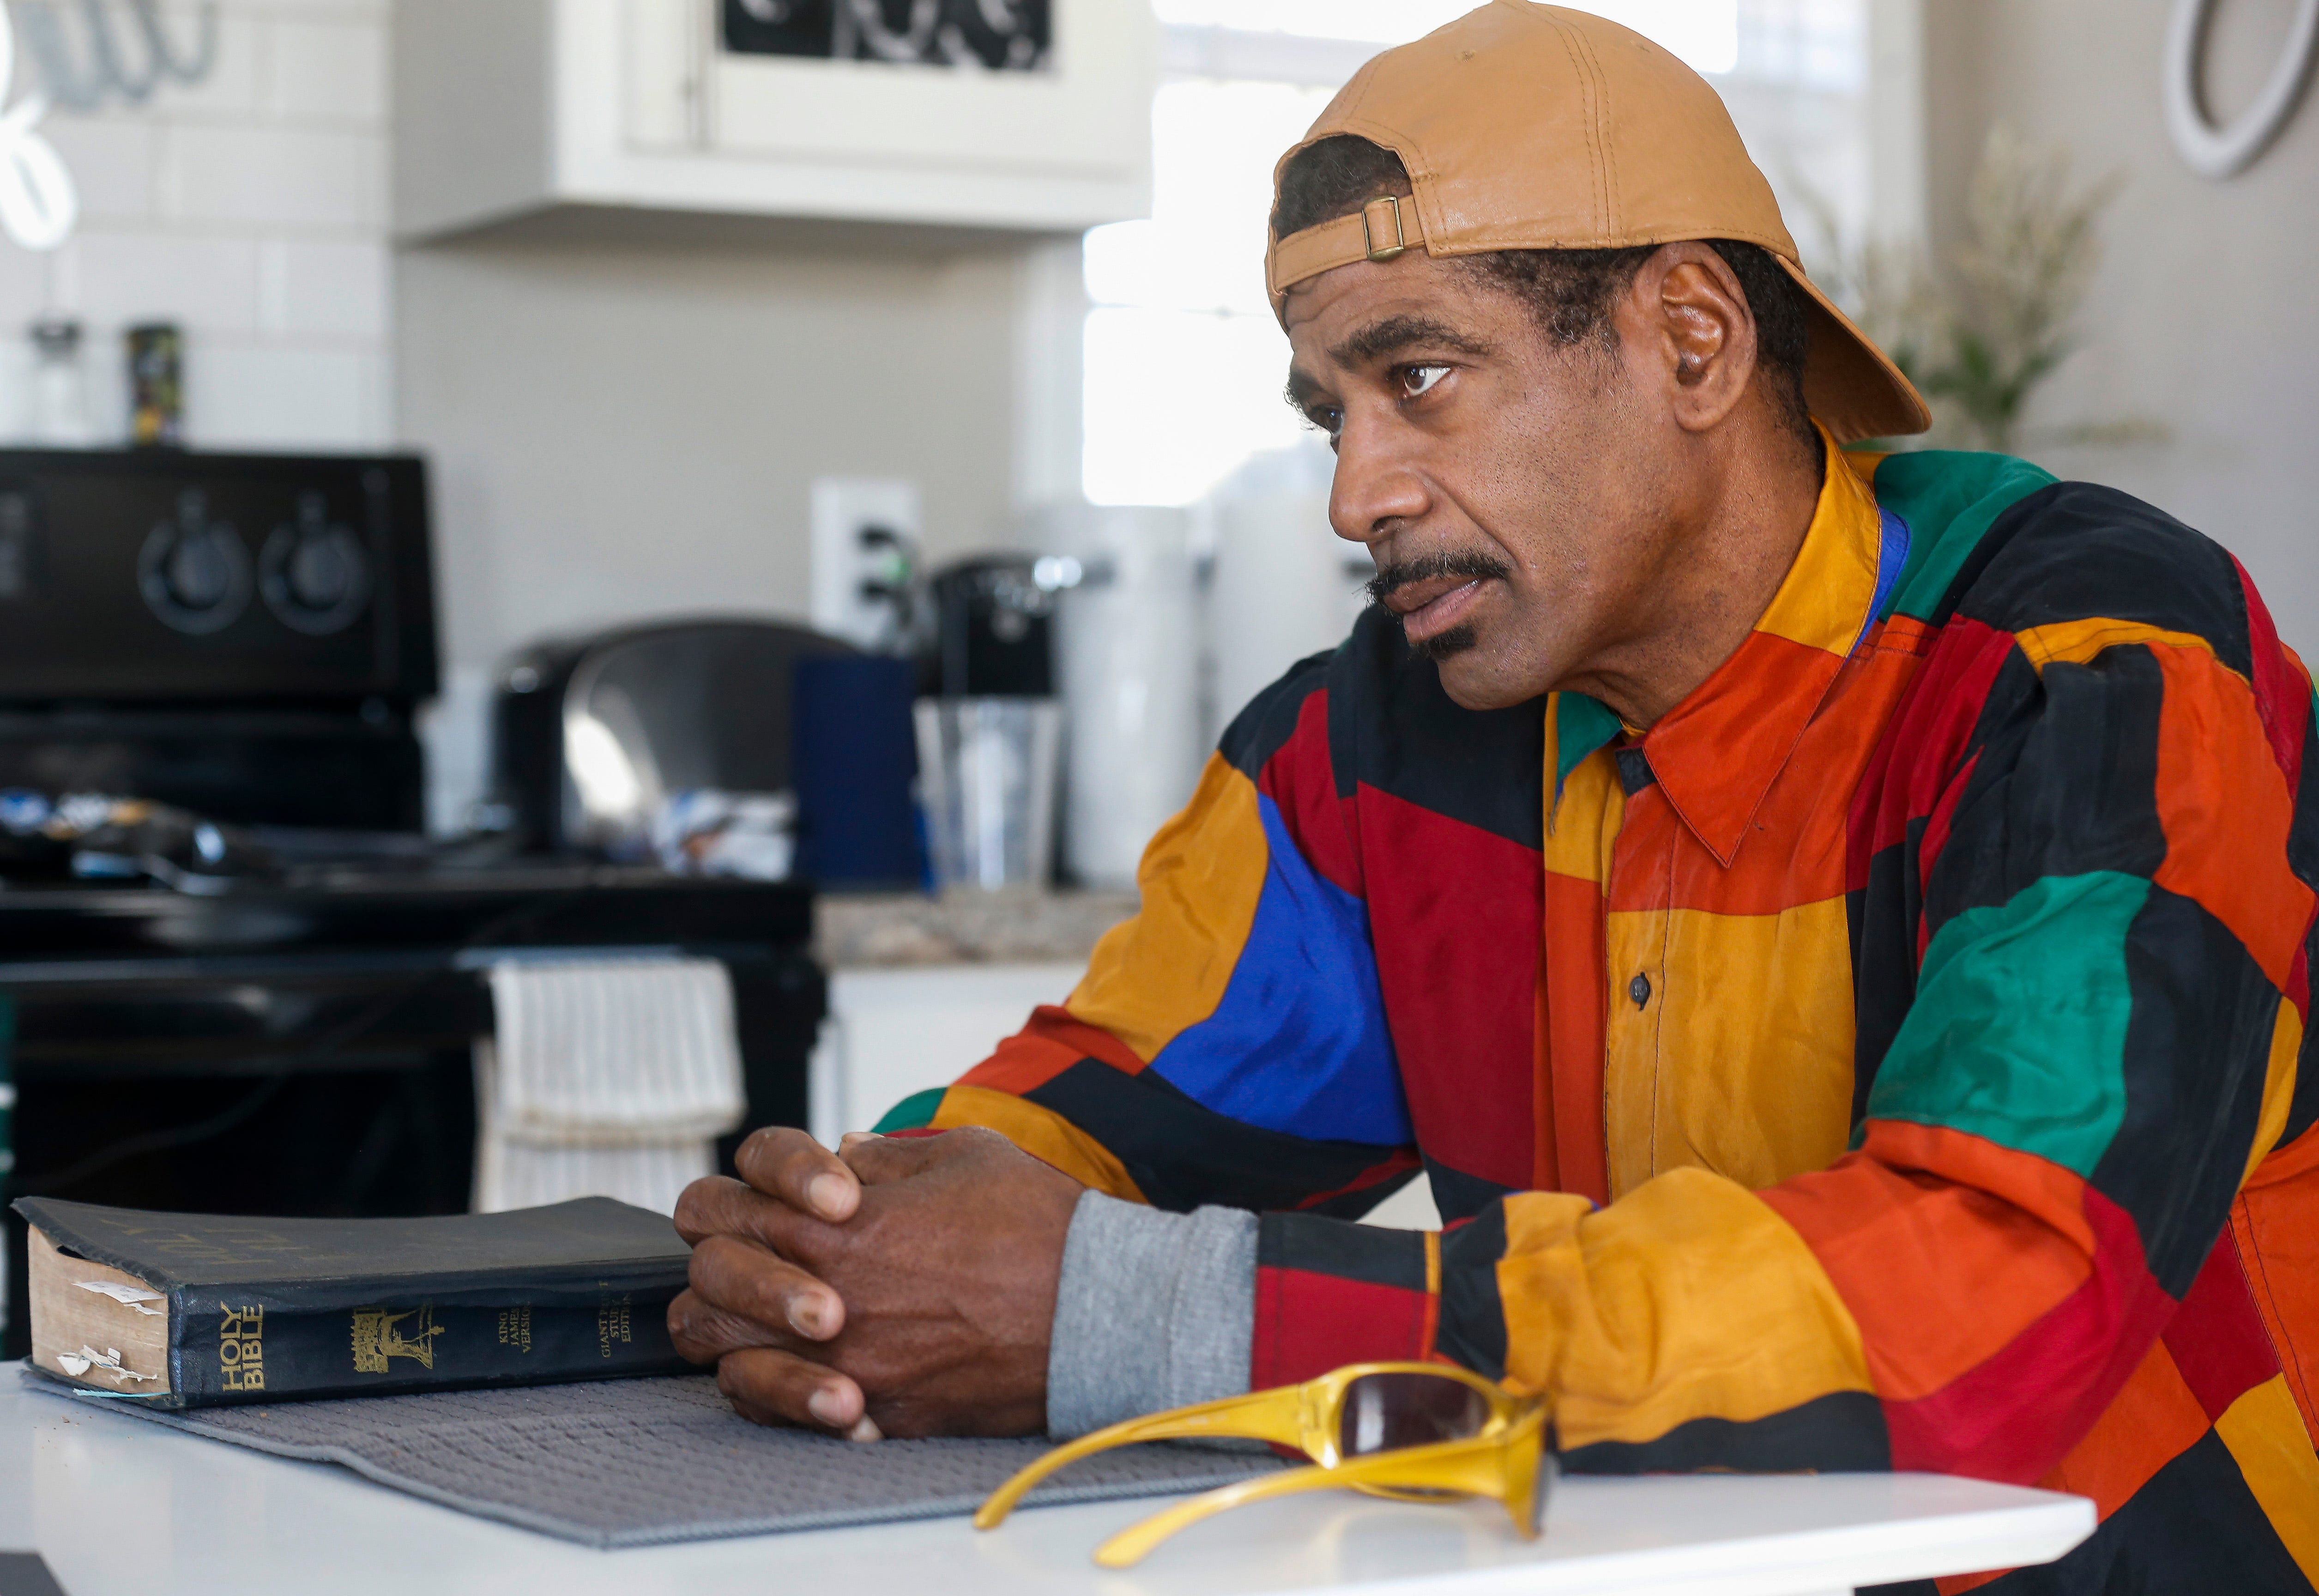 Gary Boots talks about his experiences being homeless while sitting at his new kitchen table inside his tiny house at Eden Village on Tuesday, Nov. 20, 2018.